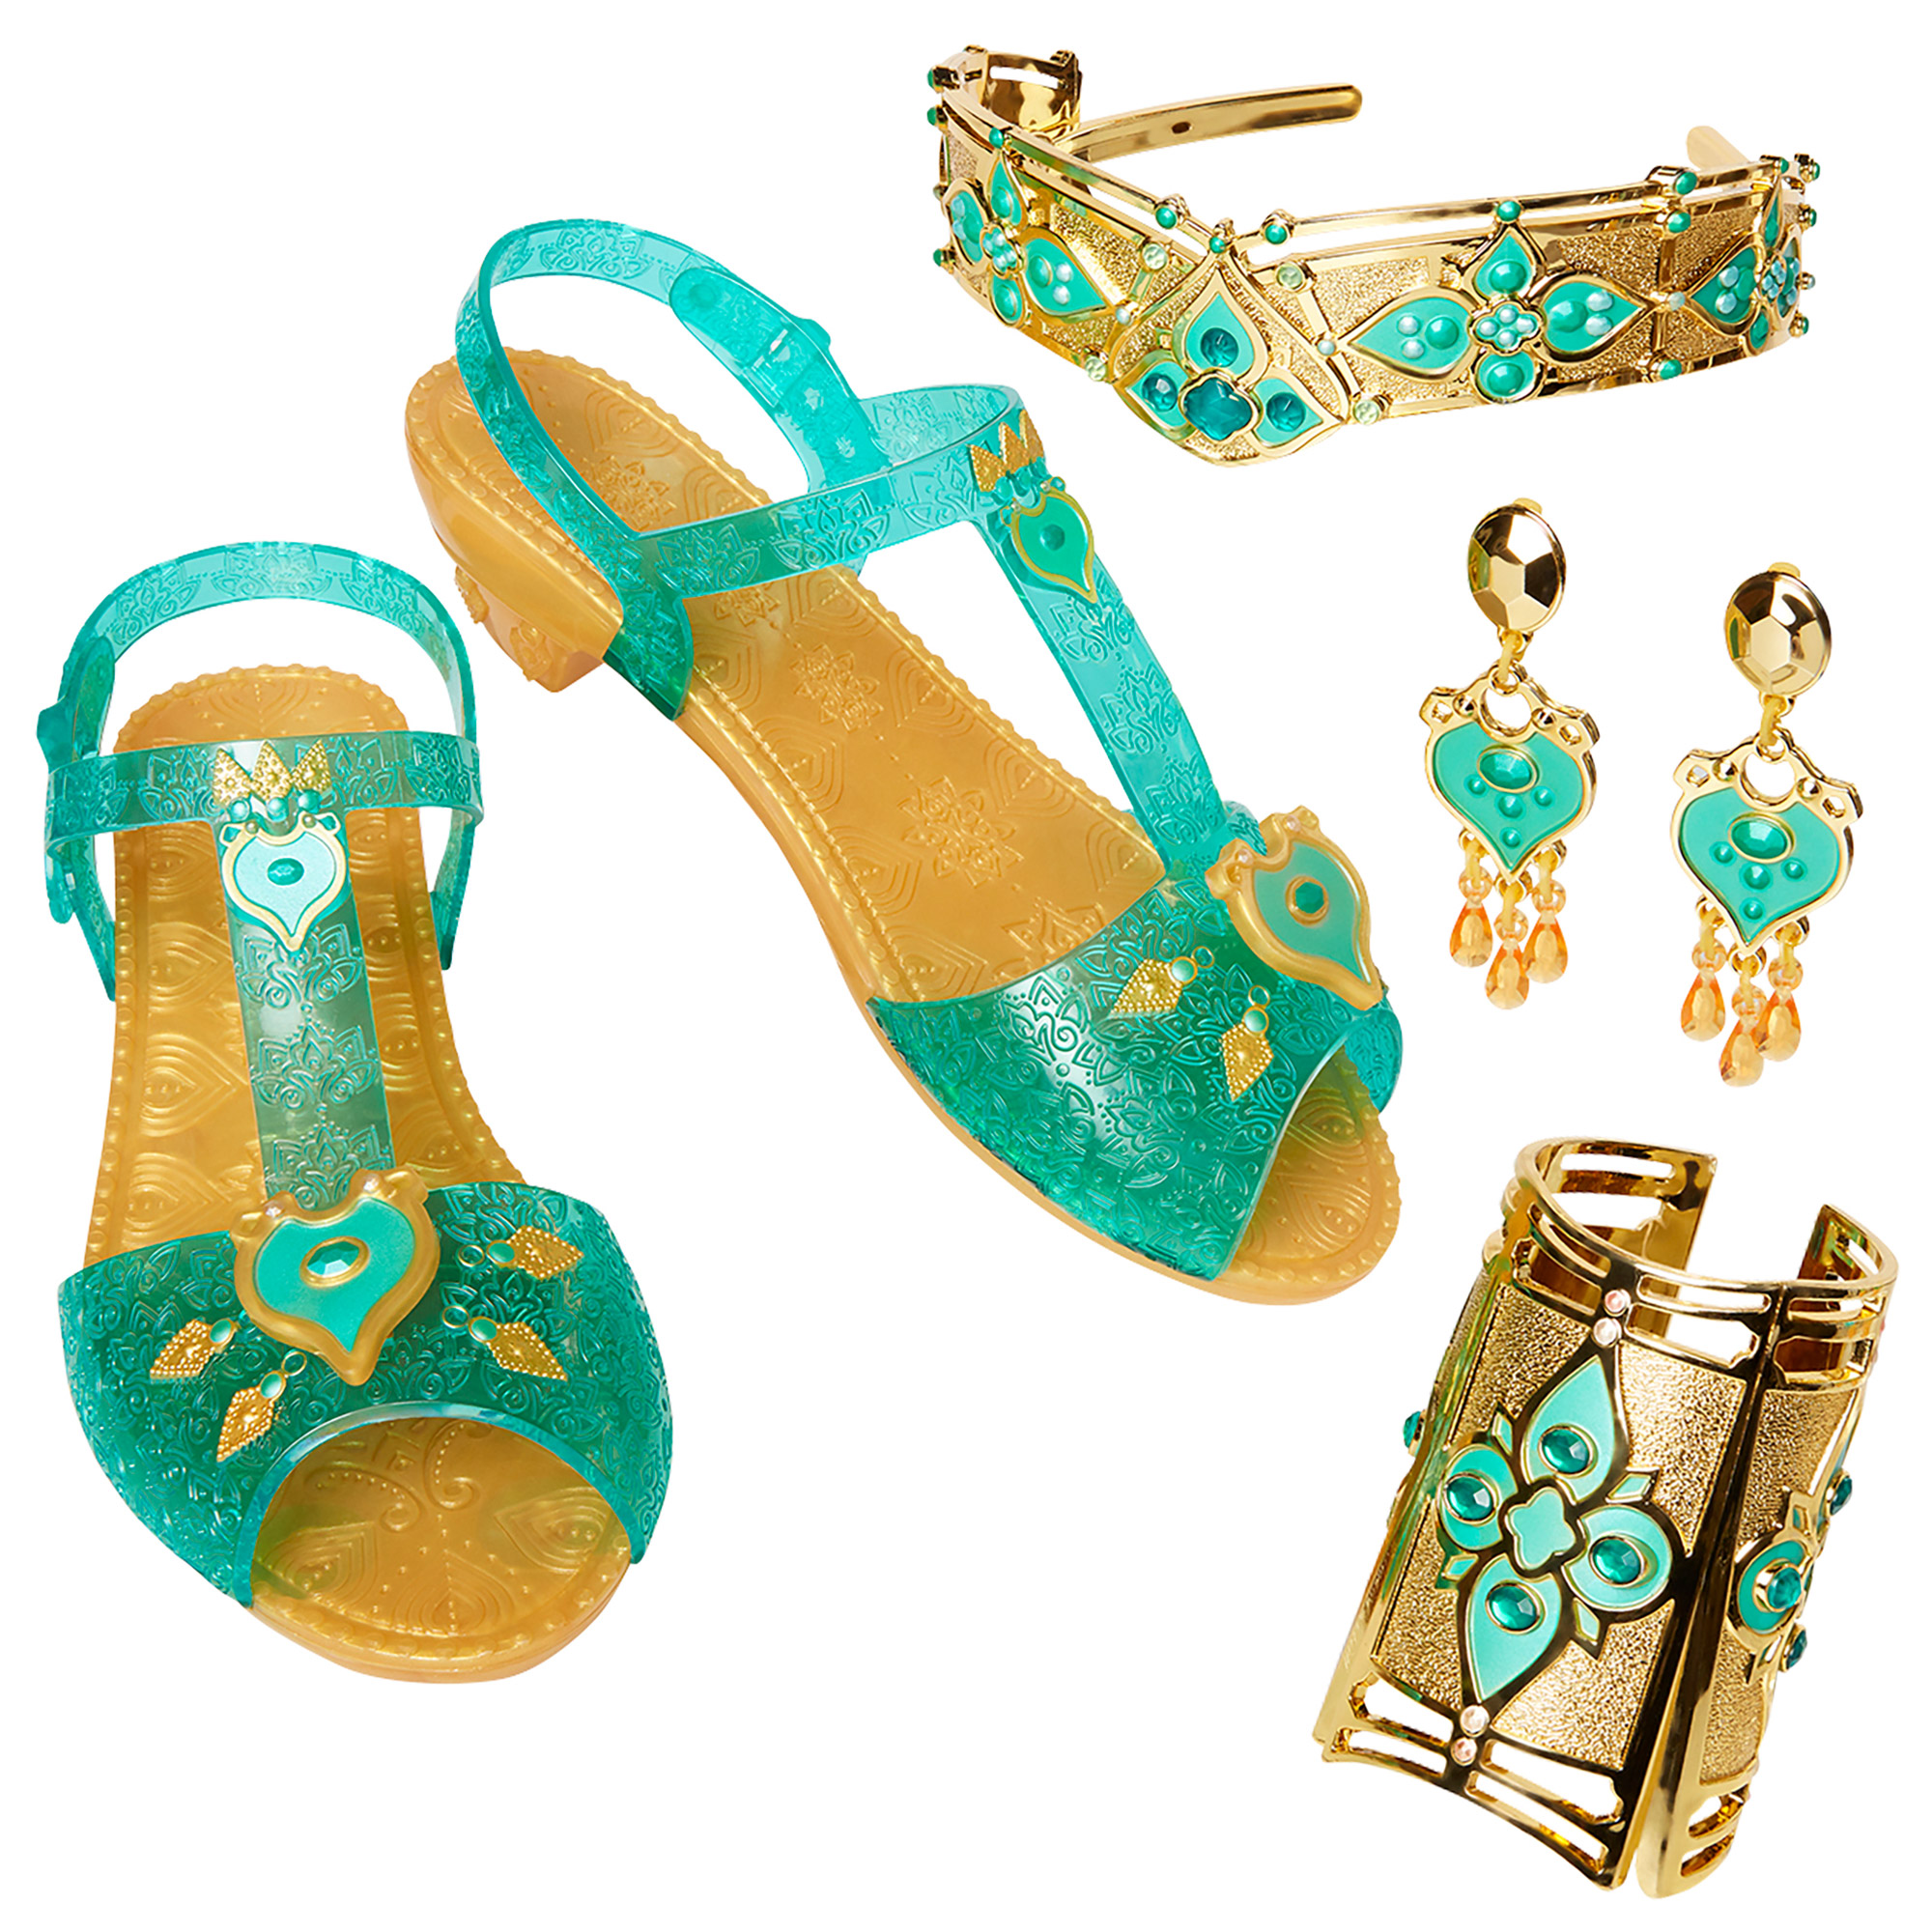 Disney Aladdin Deluxe Jasmine Accessory Set